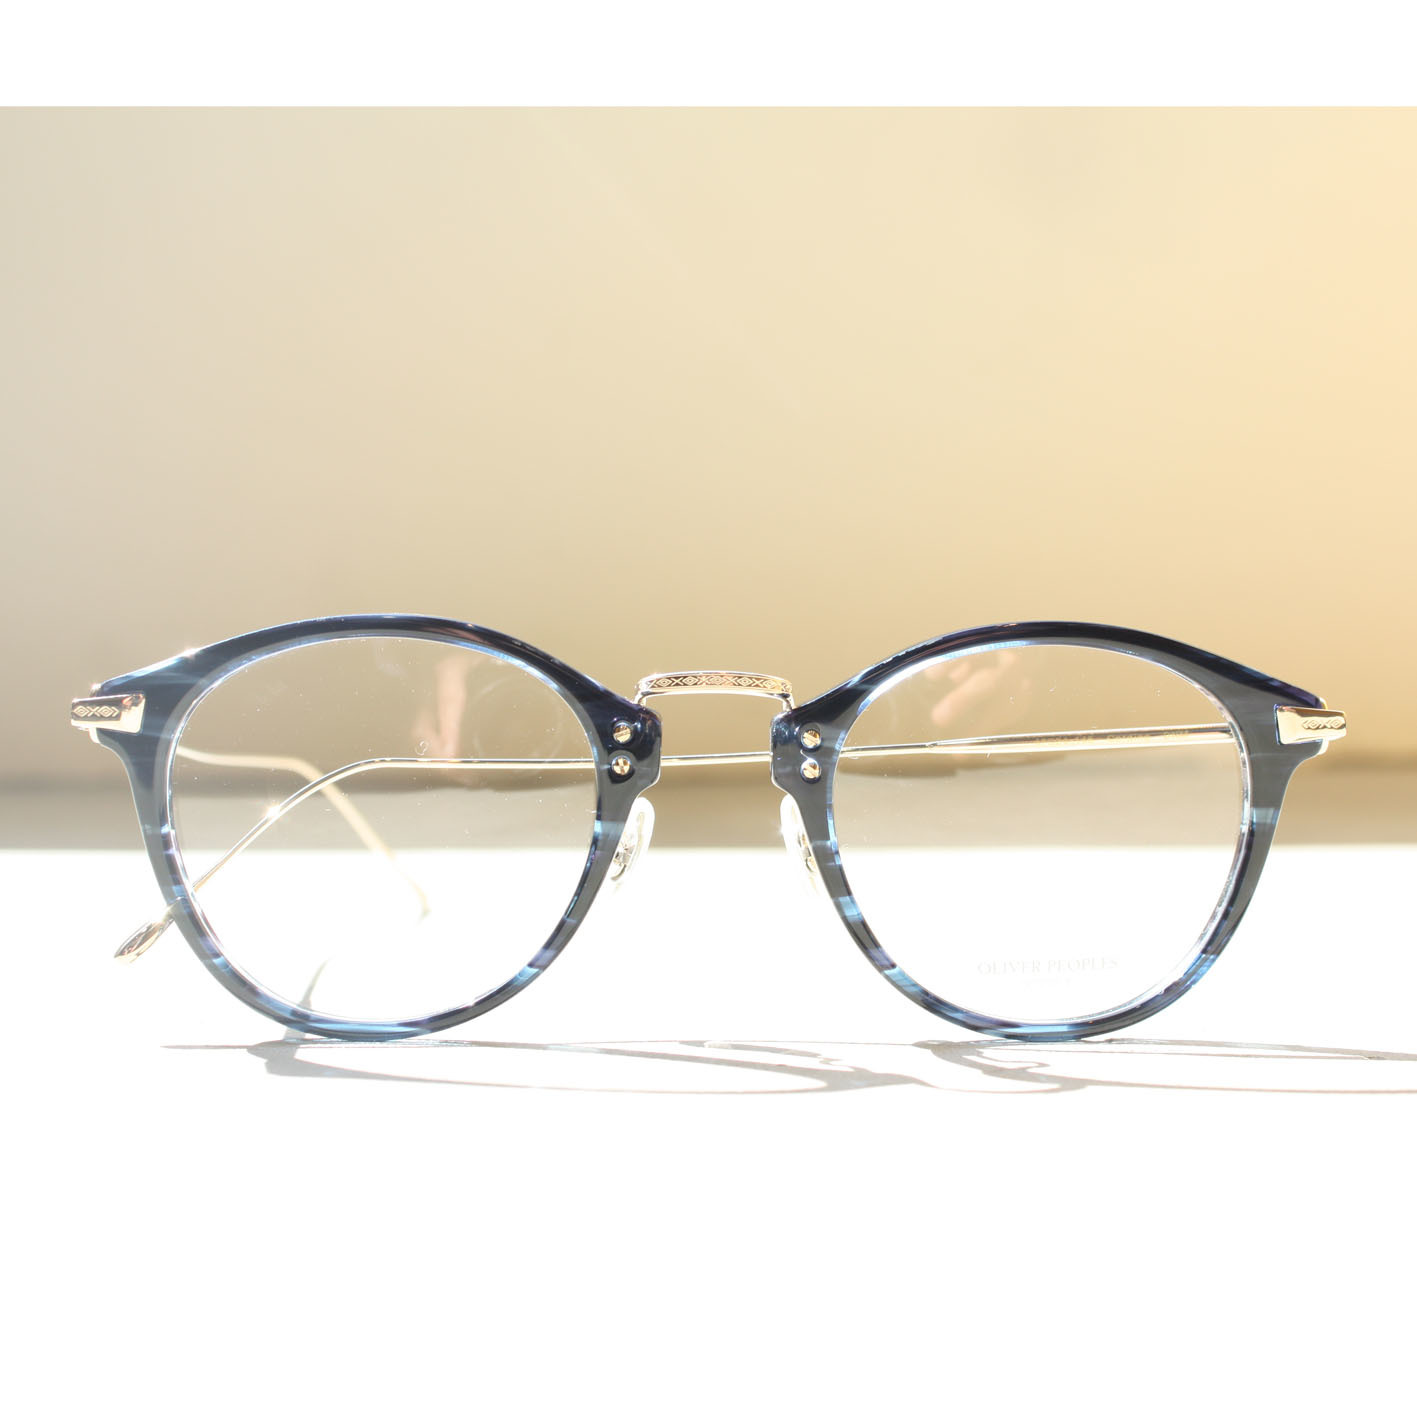 OLIVER PEOPLES 2016 NEW ARRIVAL_f0208675_18190708.jpg